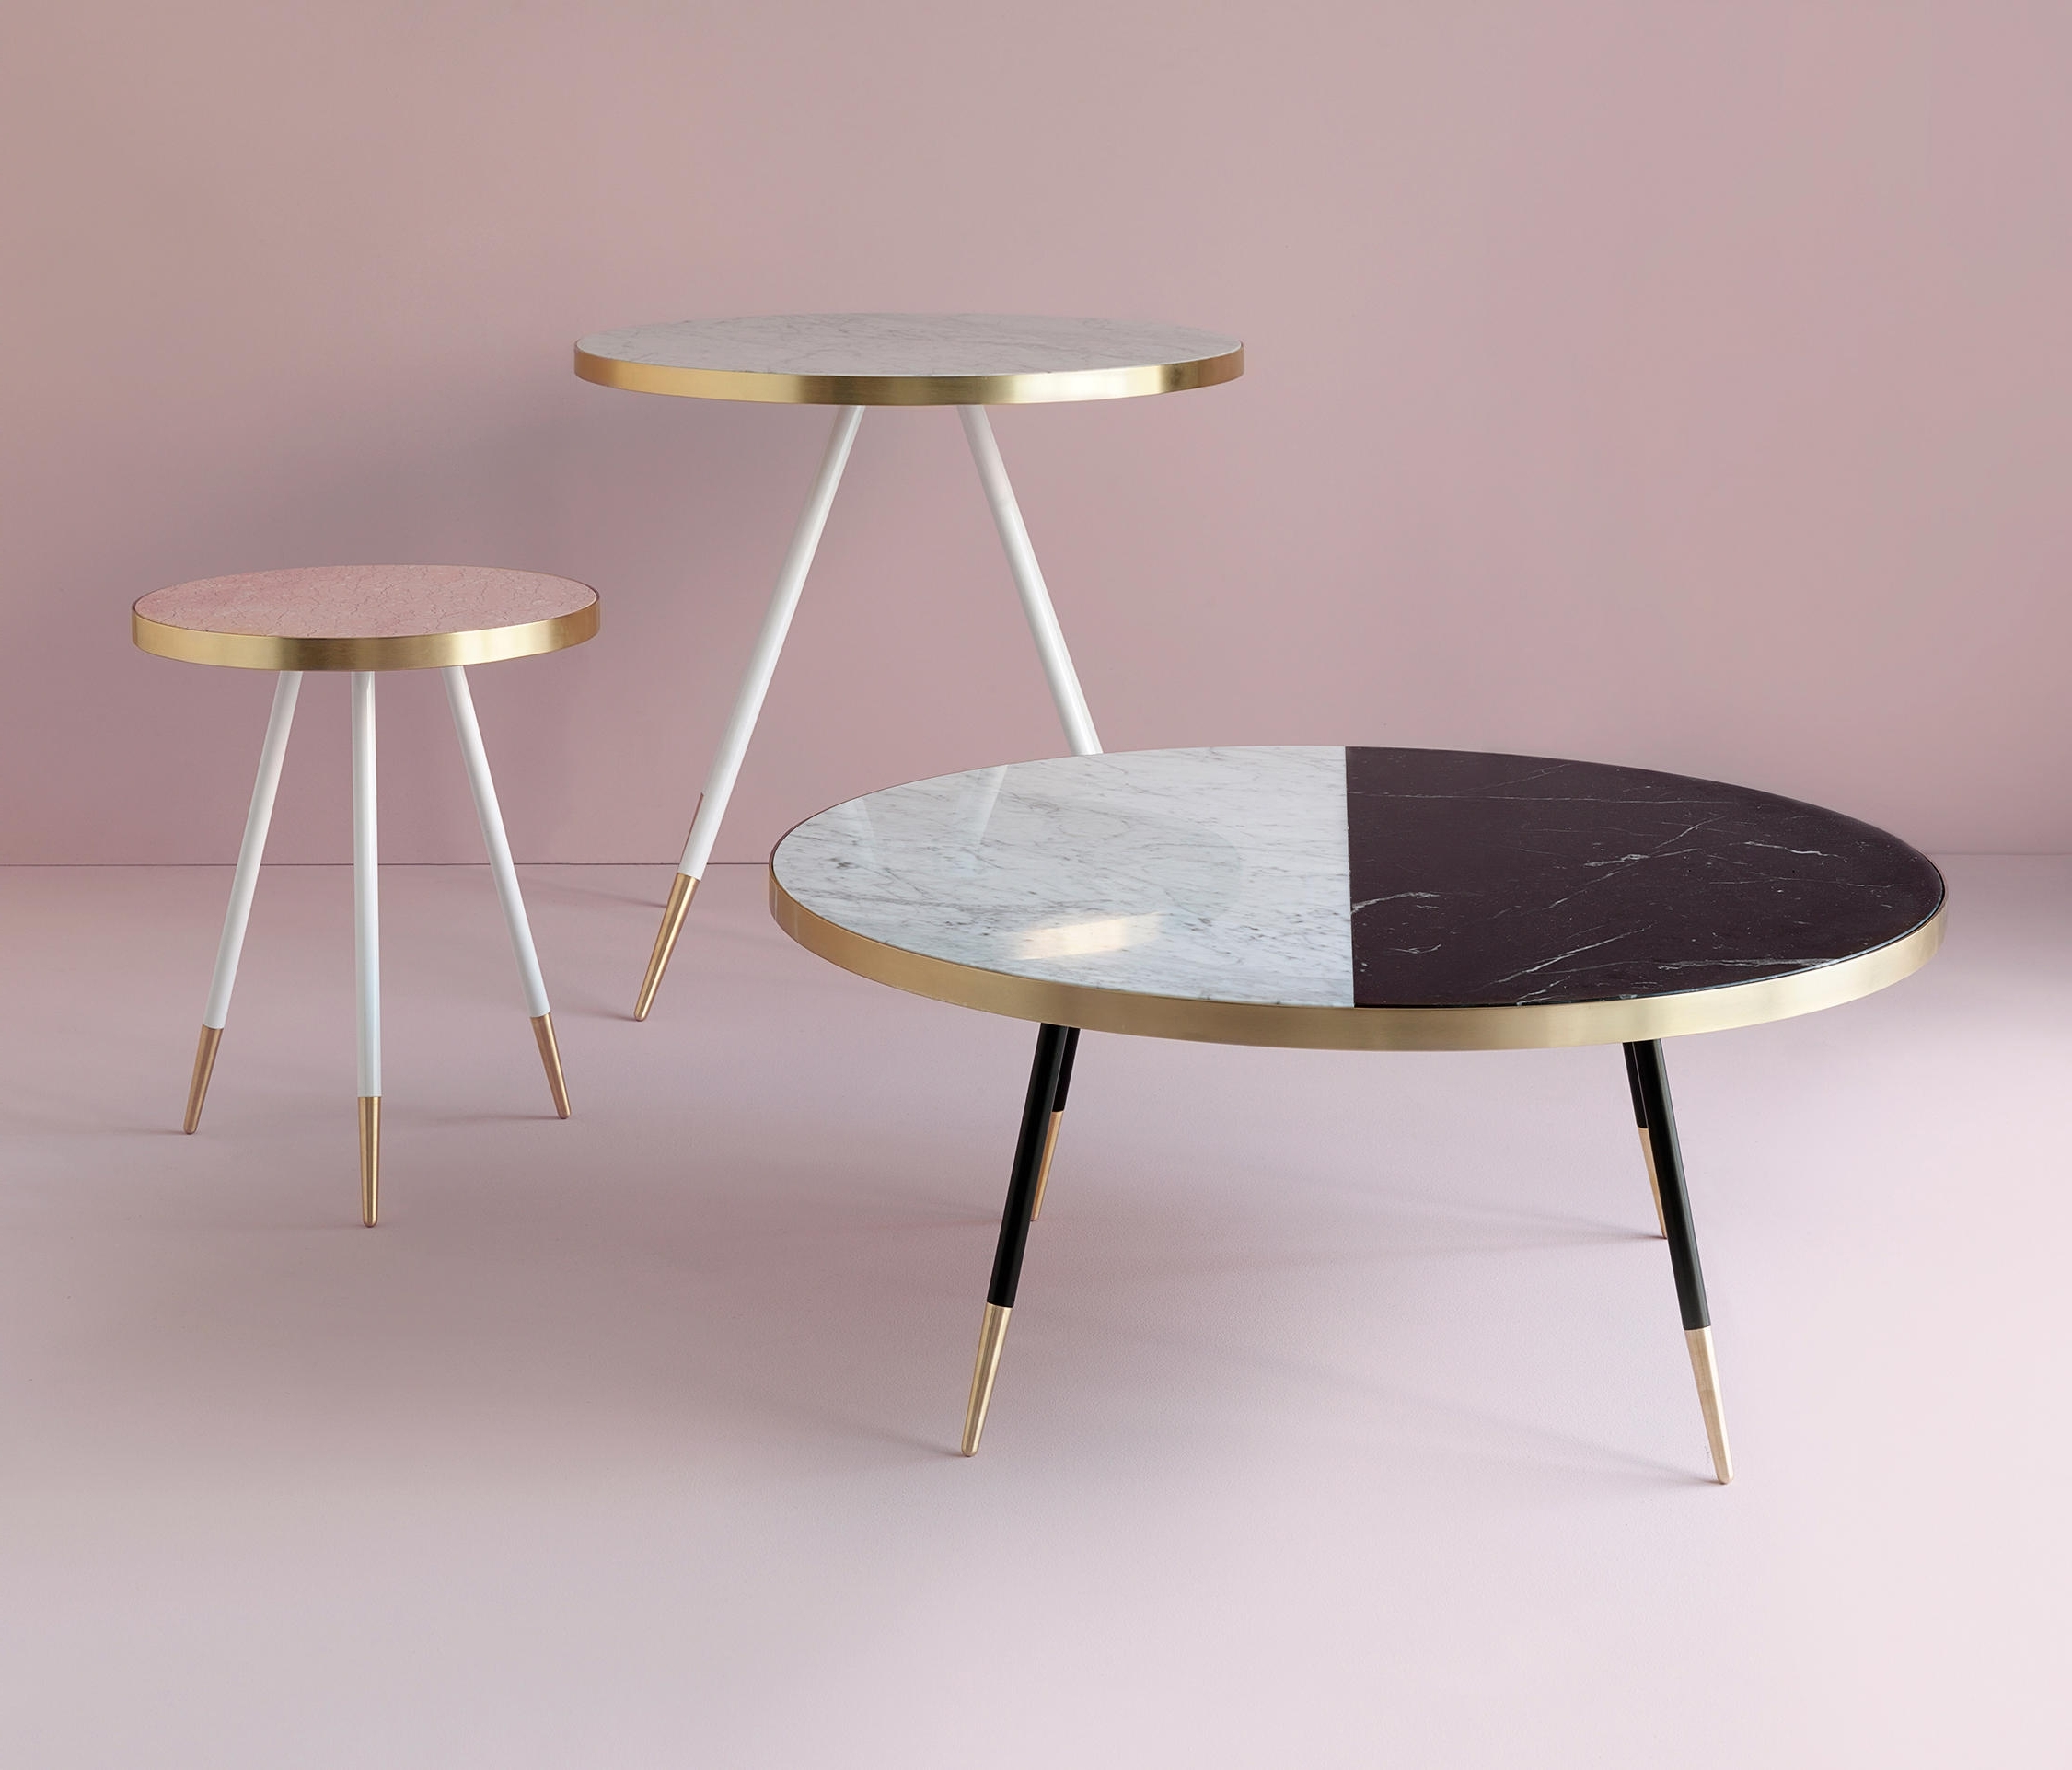 Famous 2 Tone Grey And White Marble Coffee Tables Intended For Band Marble Coffee Table – Coffee Tables From Bethan Gray (View 8 of 20)